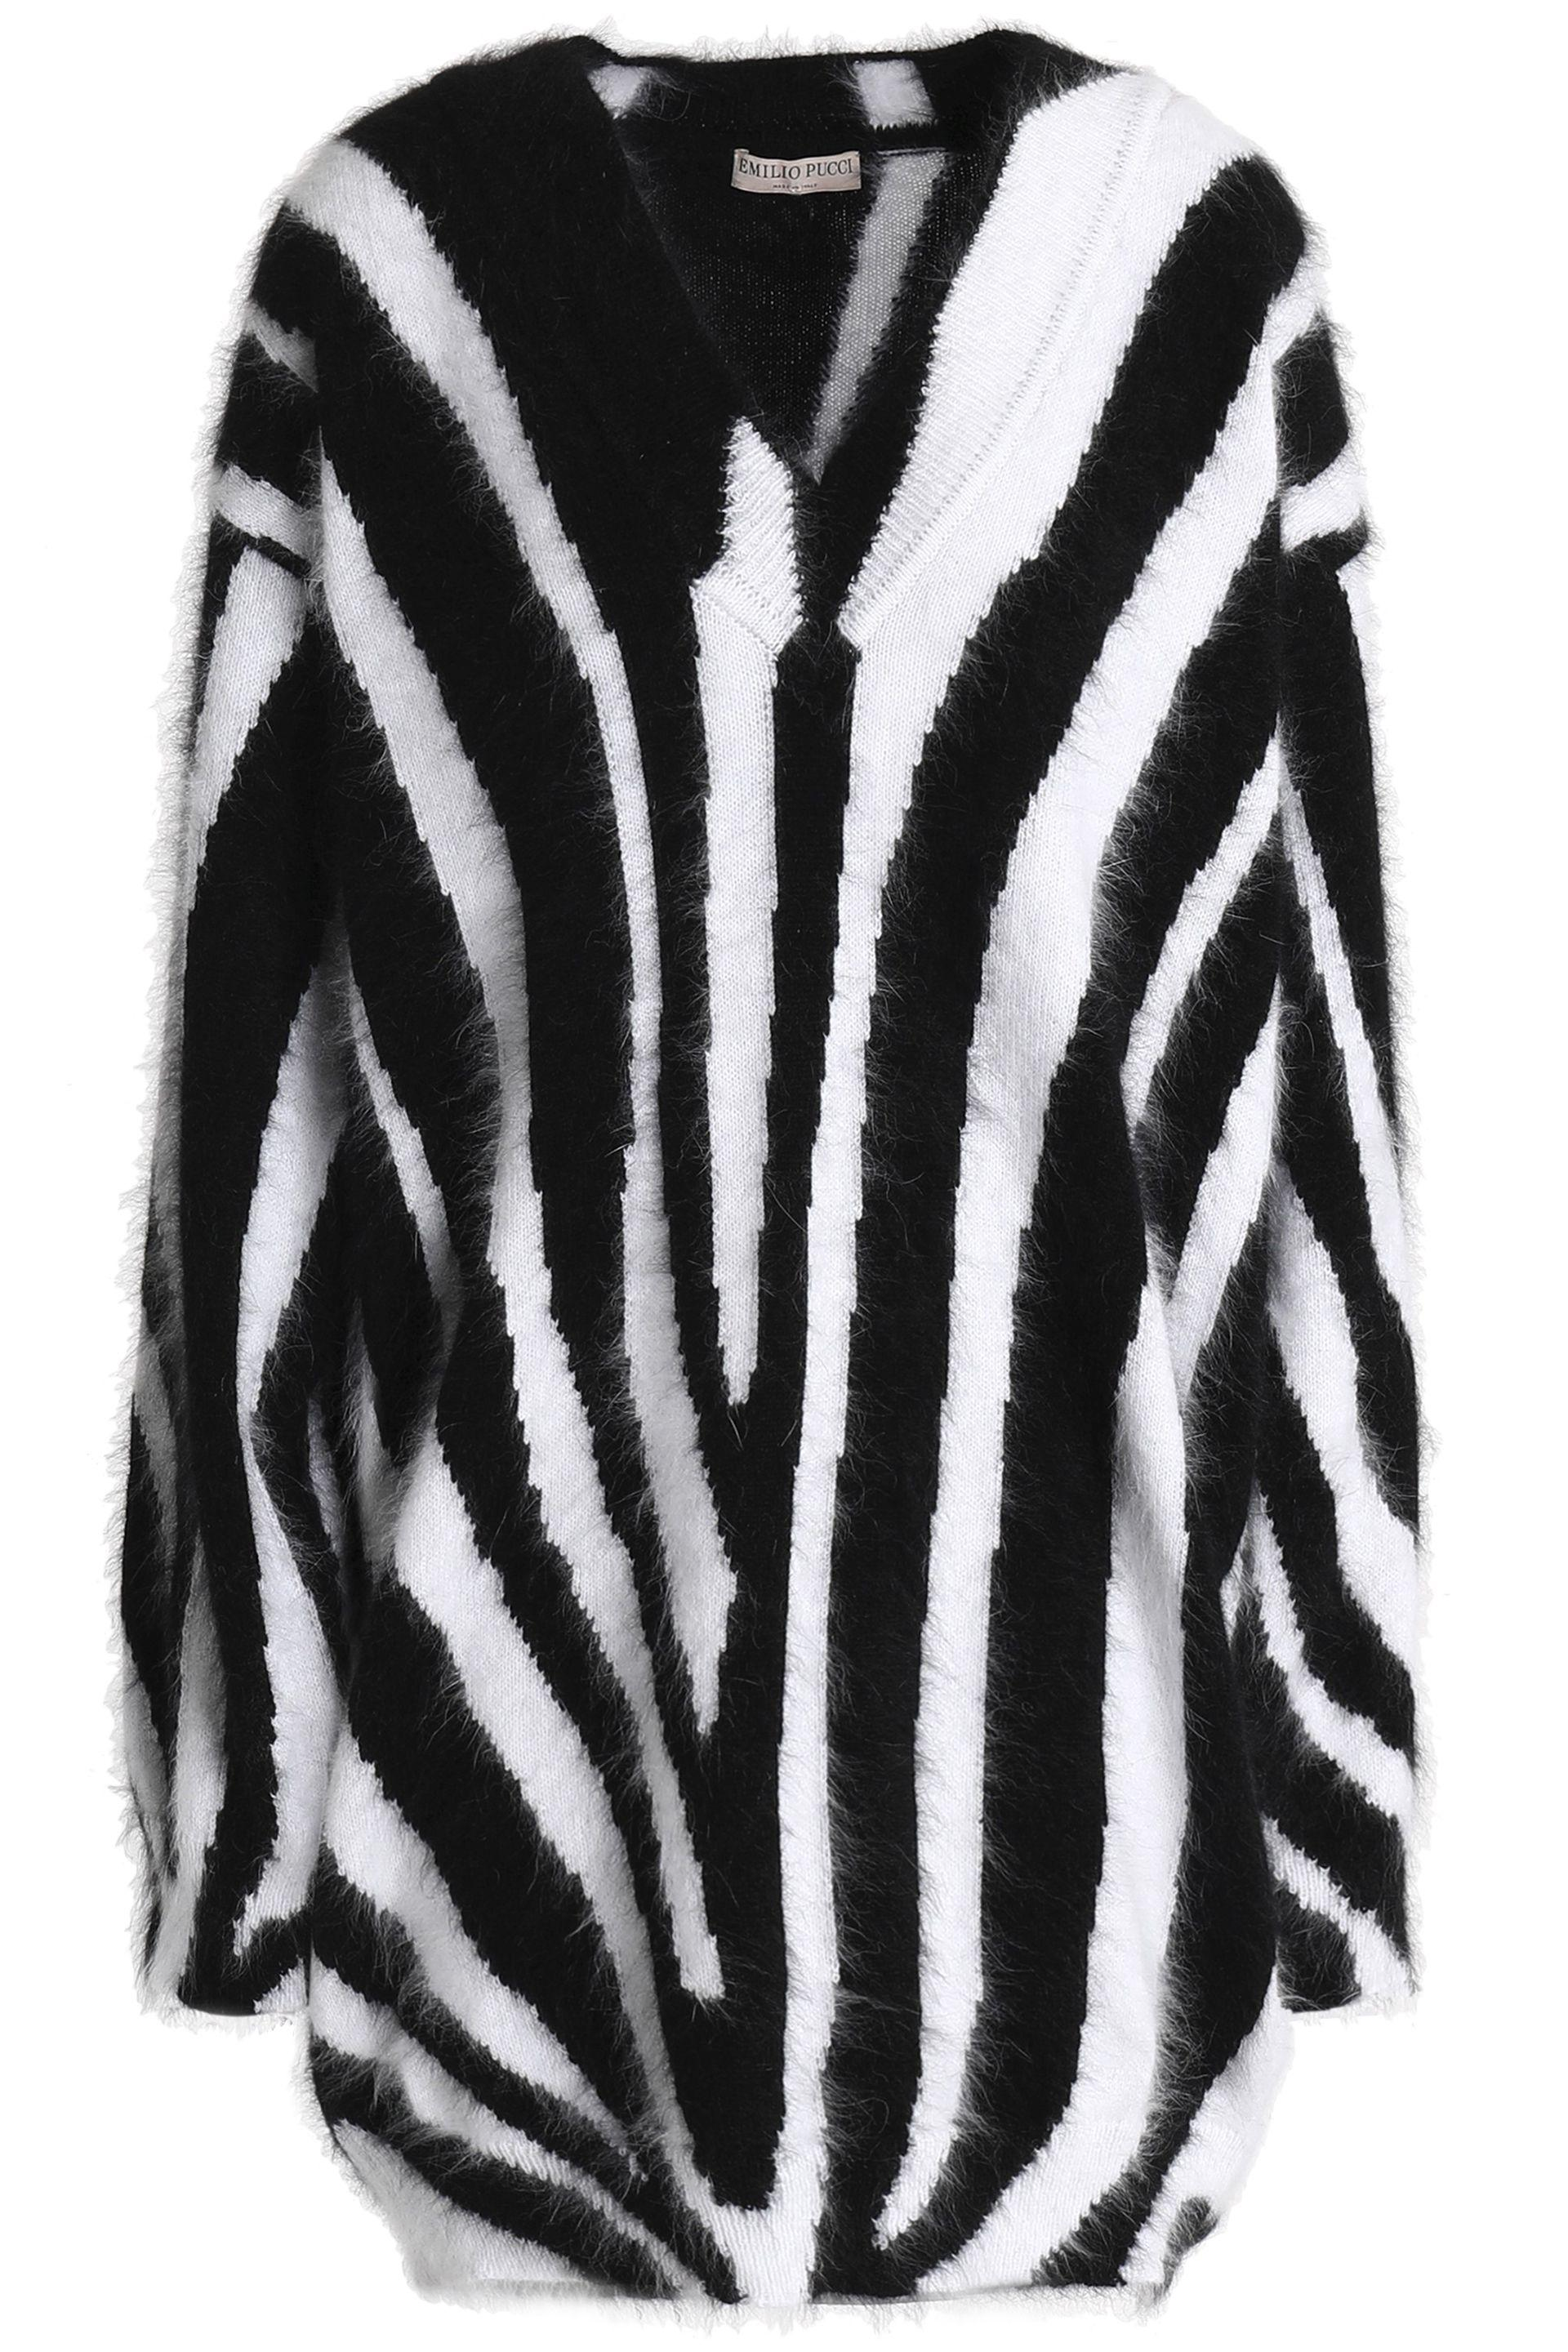 3e1537b5d61d Lyst - Emilio Pucci Woman Zebra-print Angora-blend Mini Dress White ...